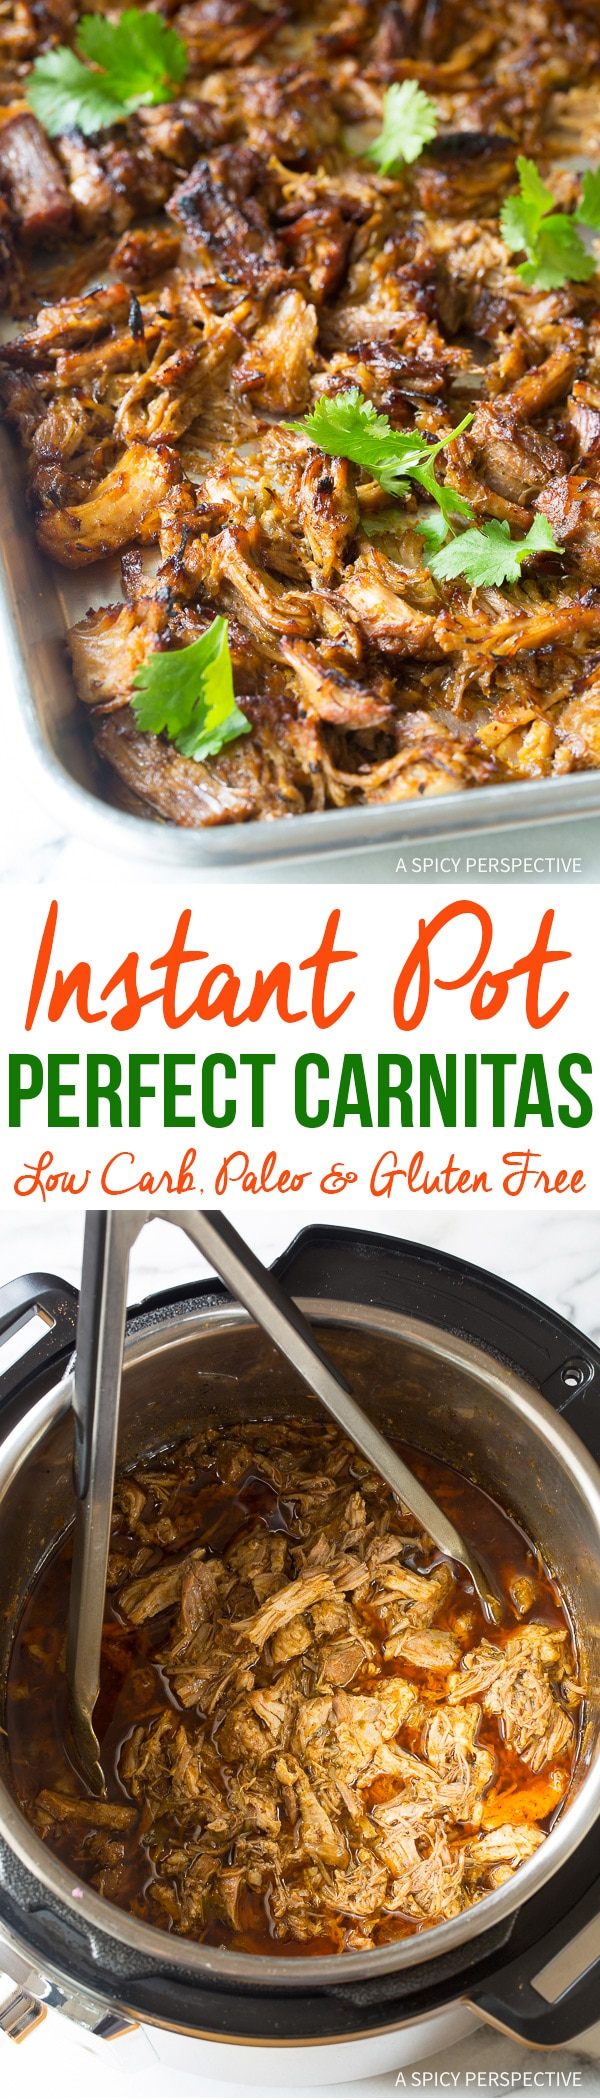 Easy Instant Pot Perfect Carnitas - Paleo, Low Carb, and Gluten Free Pressure Cooker Pork!